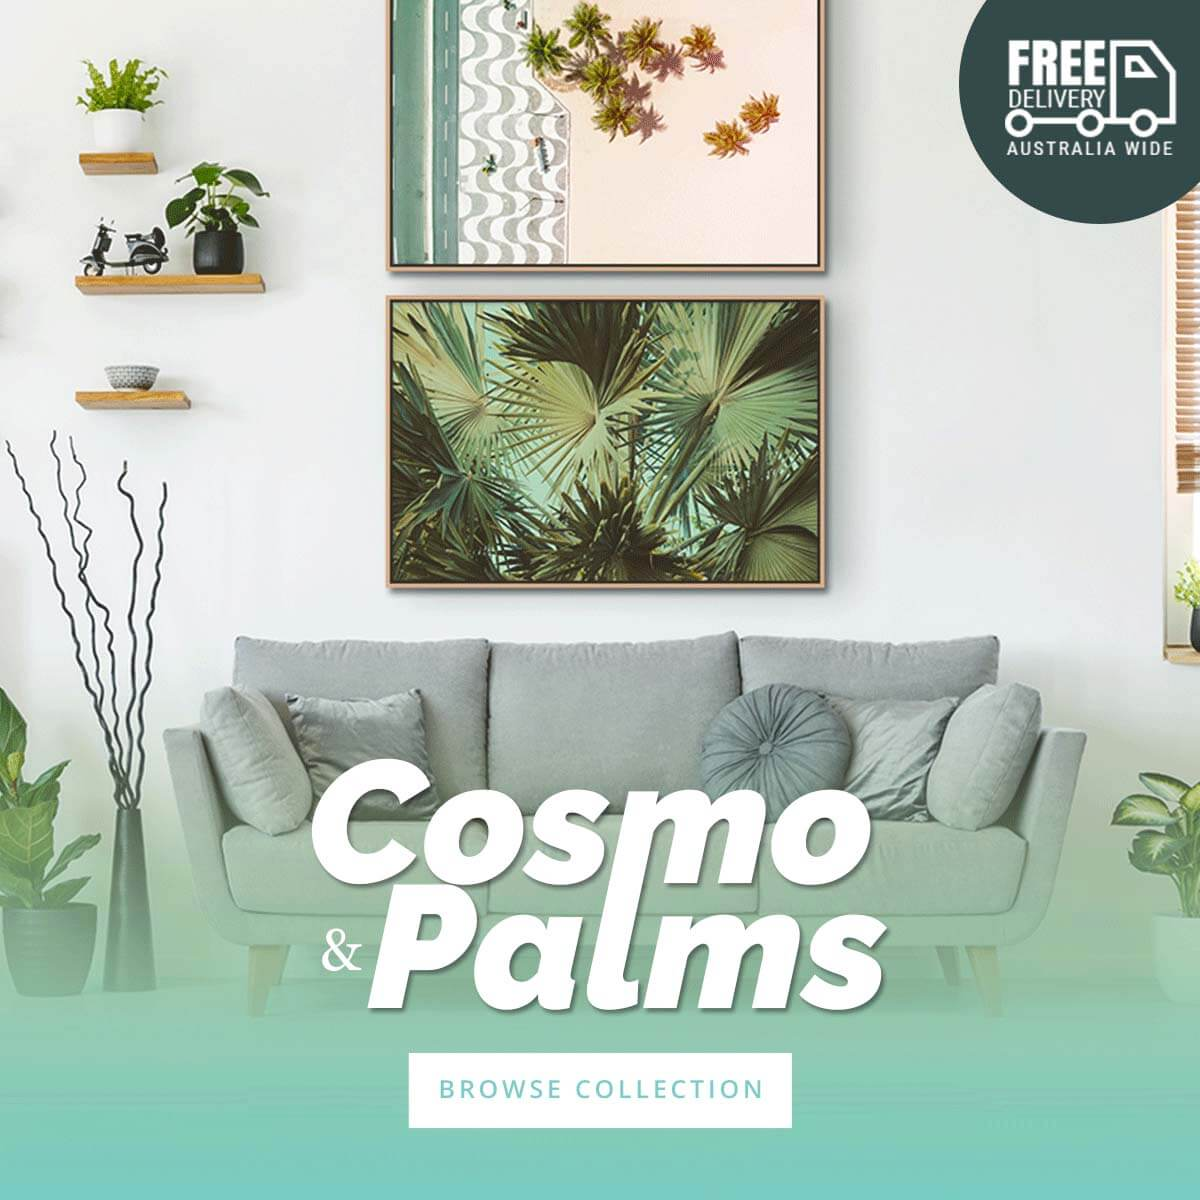 Cosmo and Palms